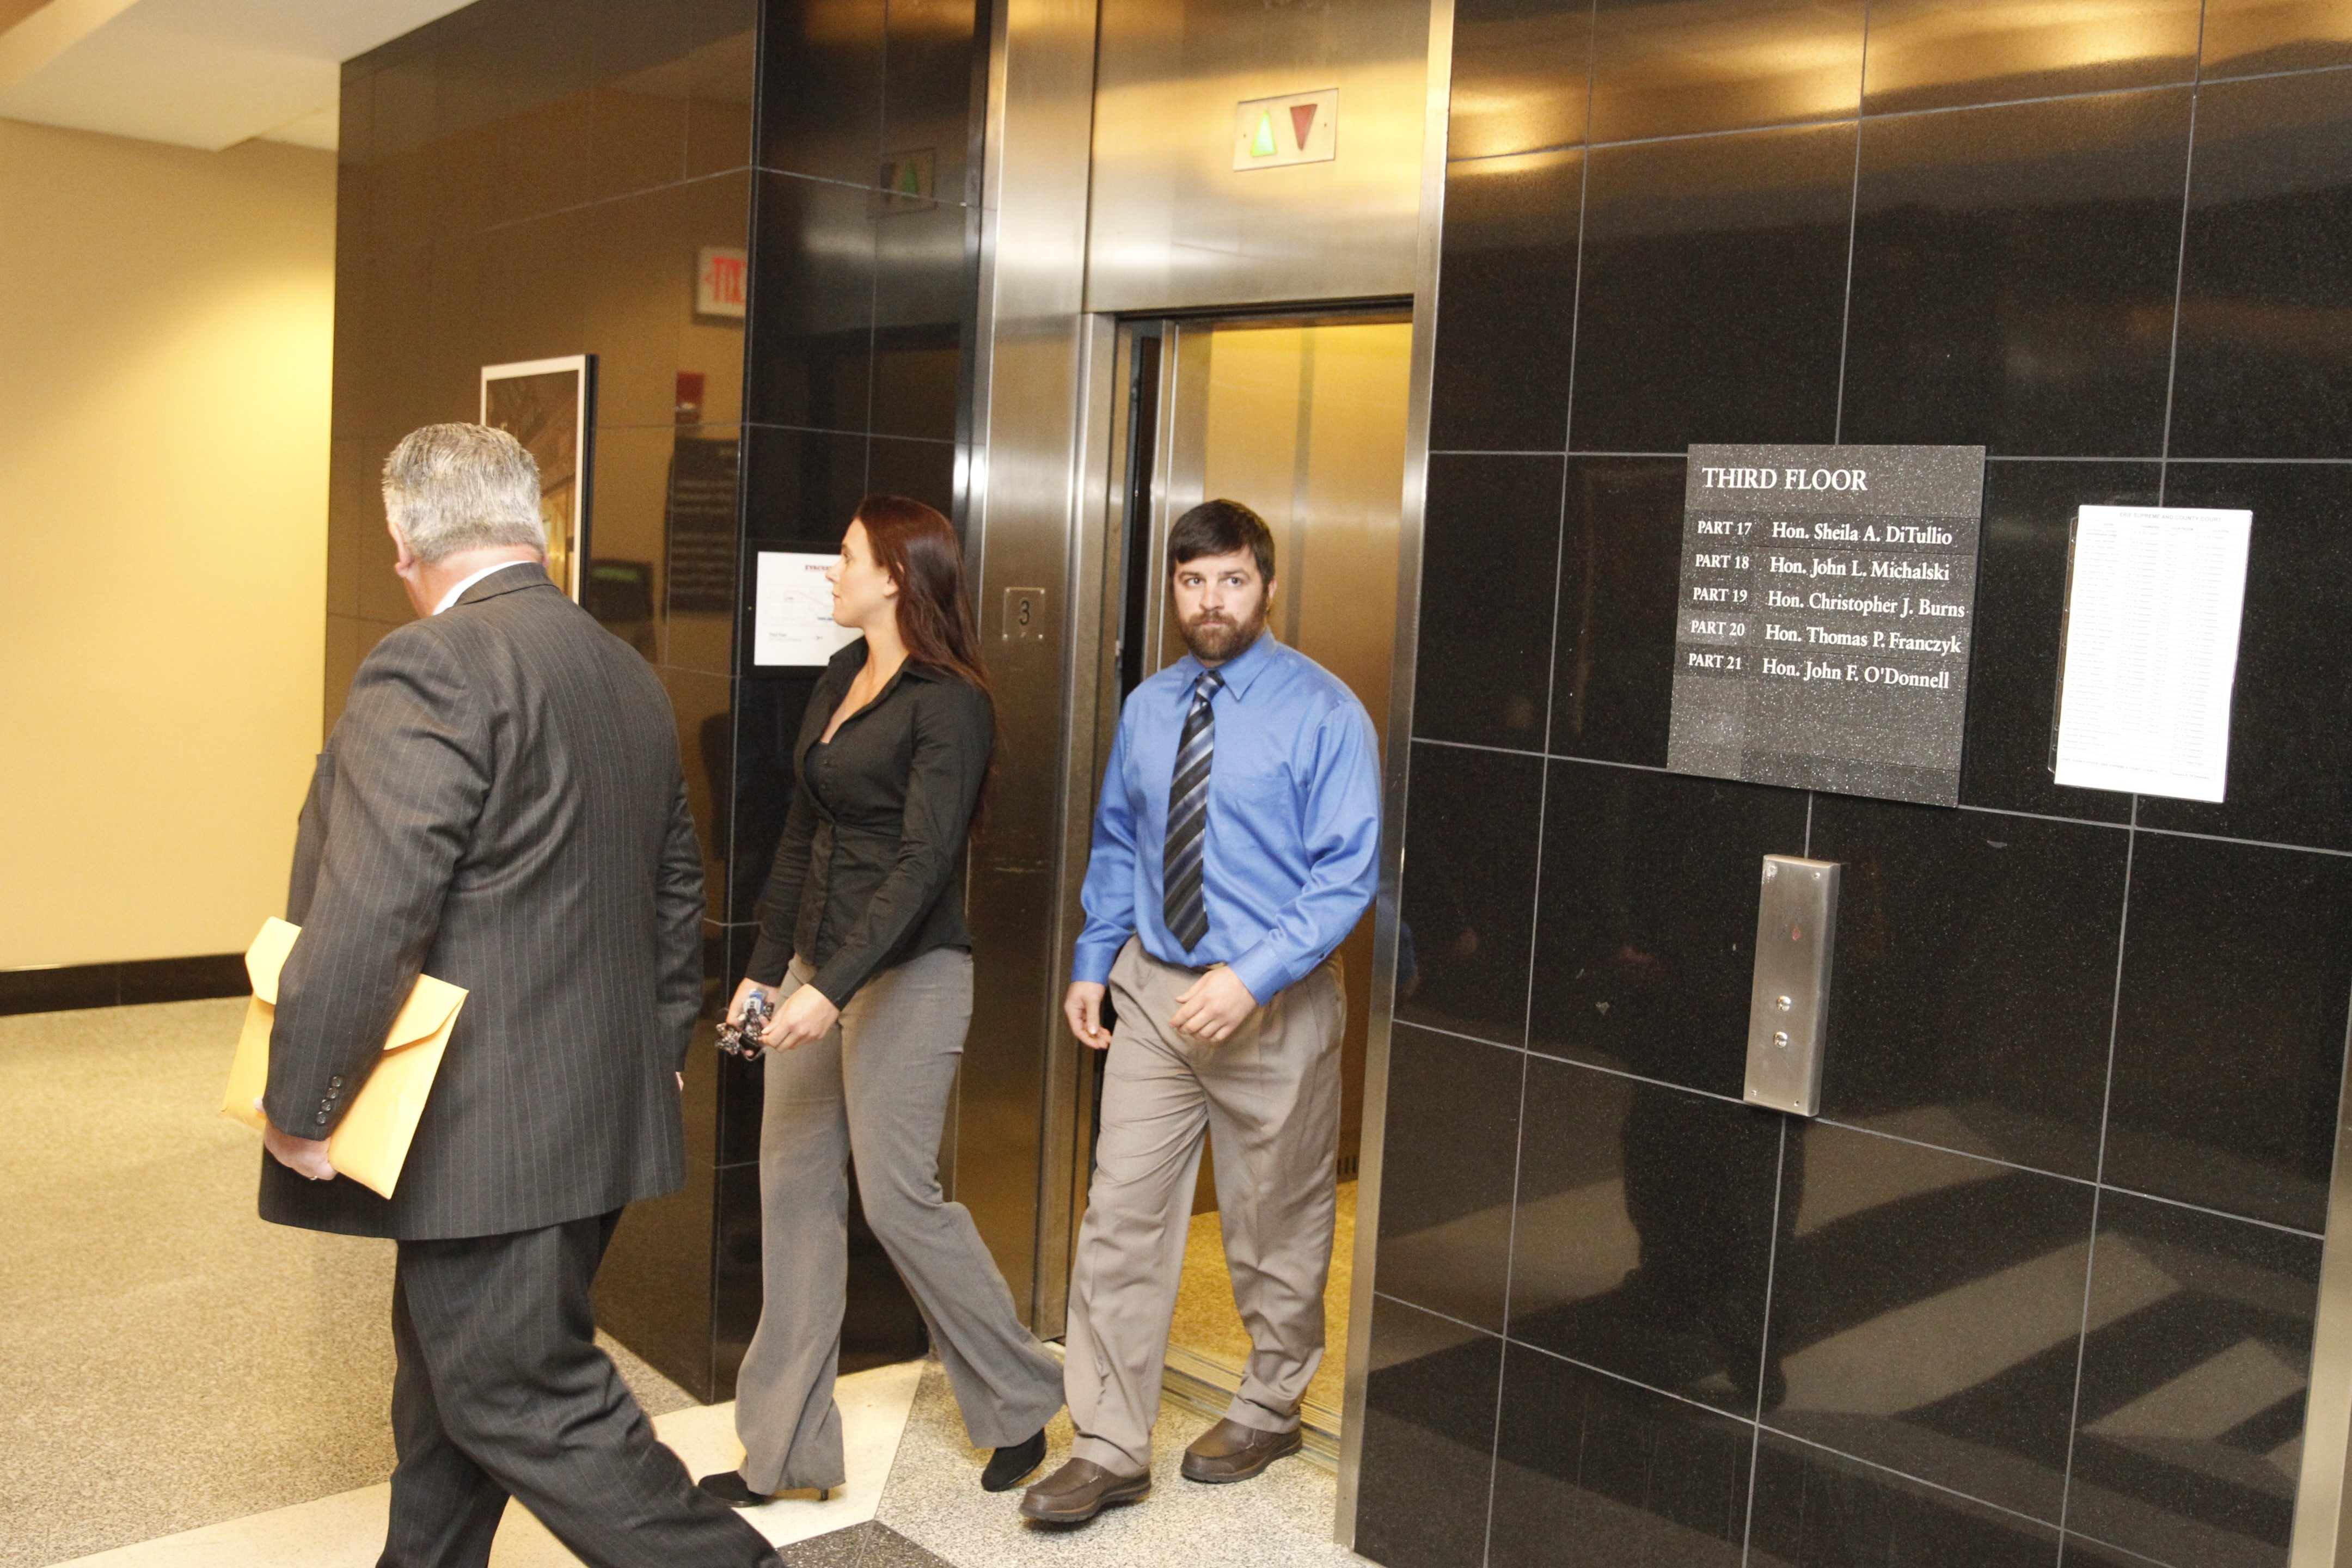 Justin Farrara got three years in jail for raping two teen -aged girls.